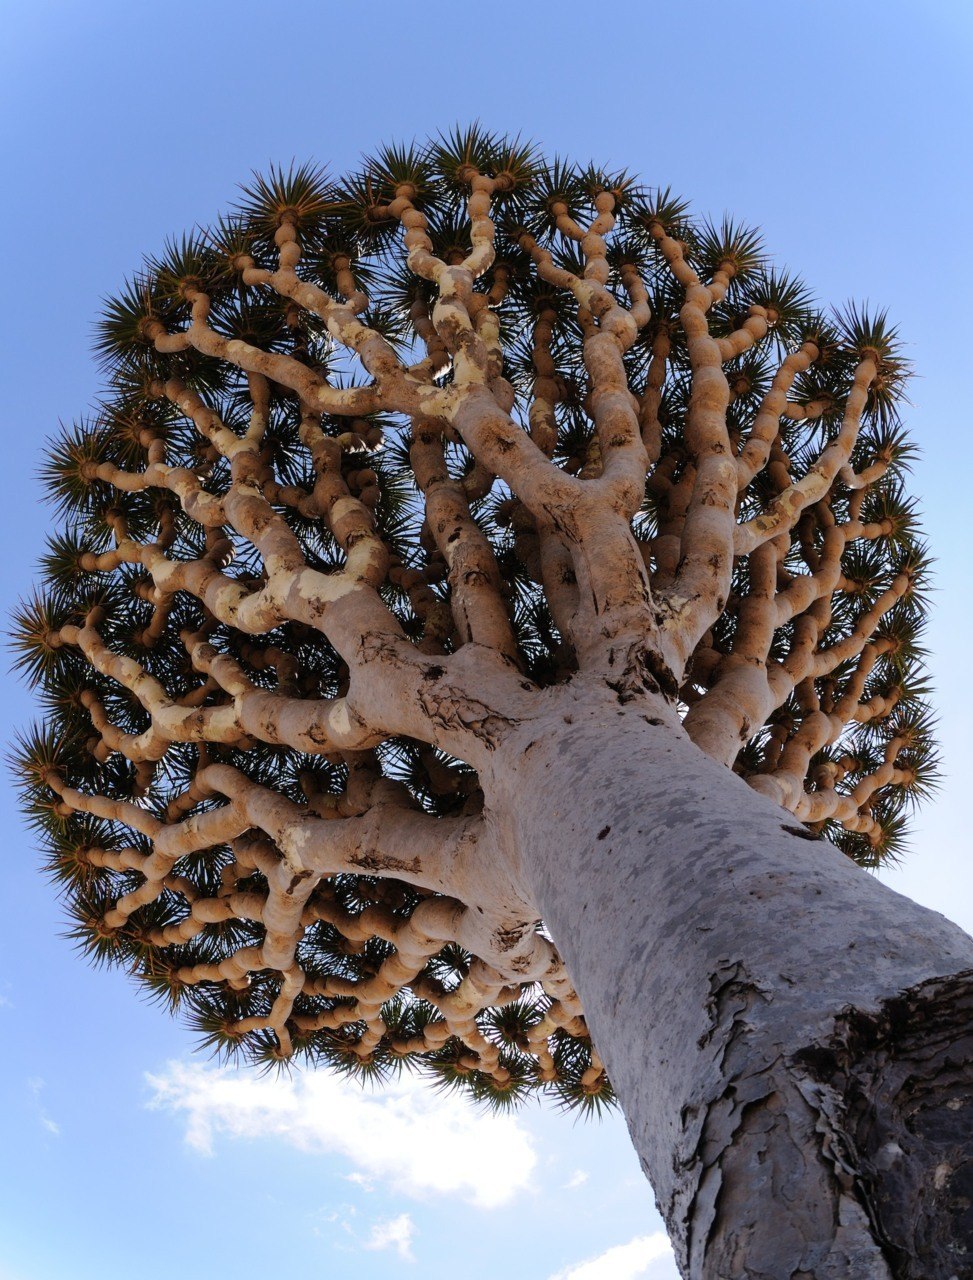 bhrama:  weedalici0us:  omg this is awesome   Dragonblood tree Socotra, Yemen